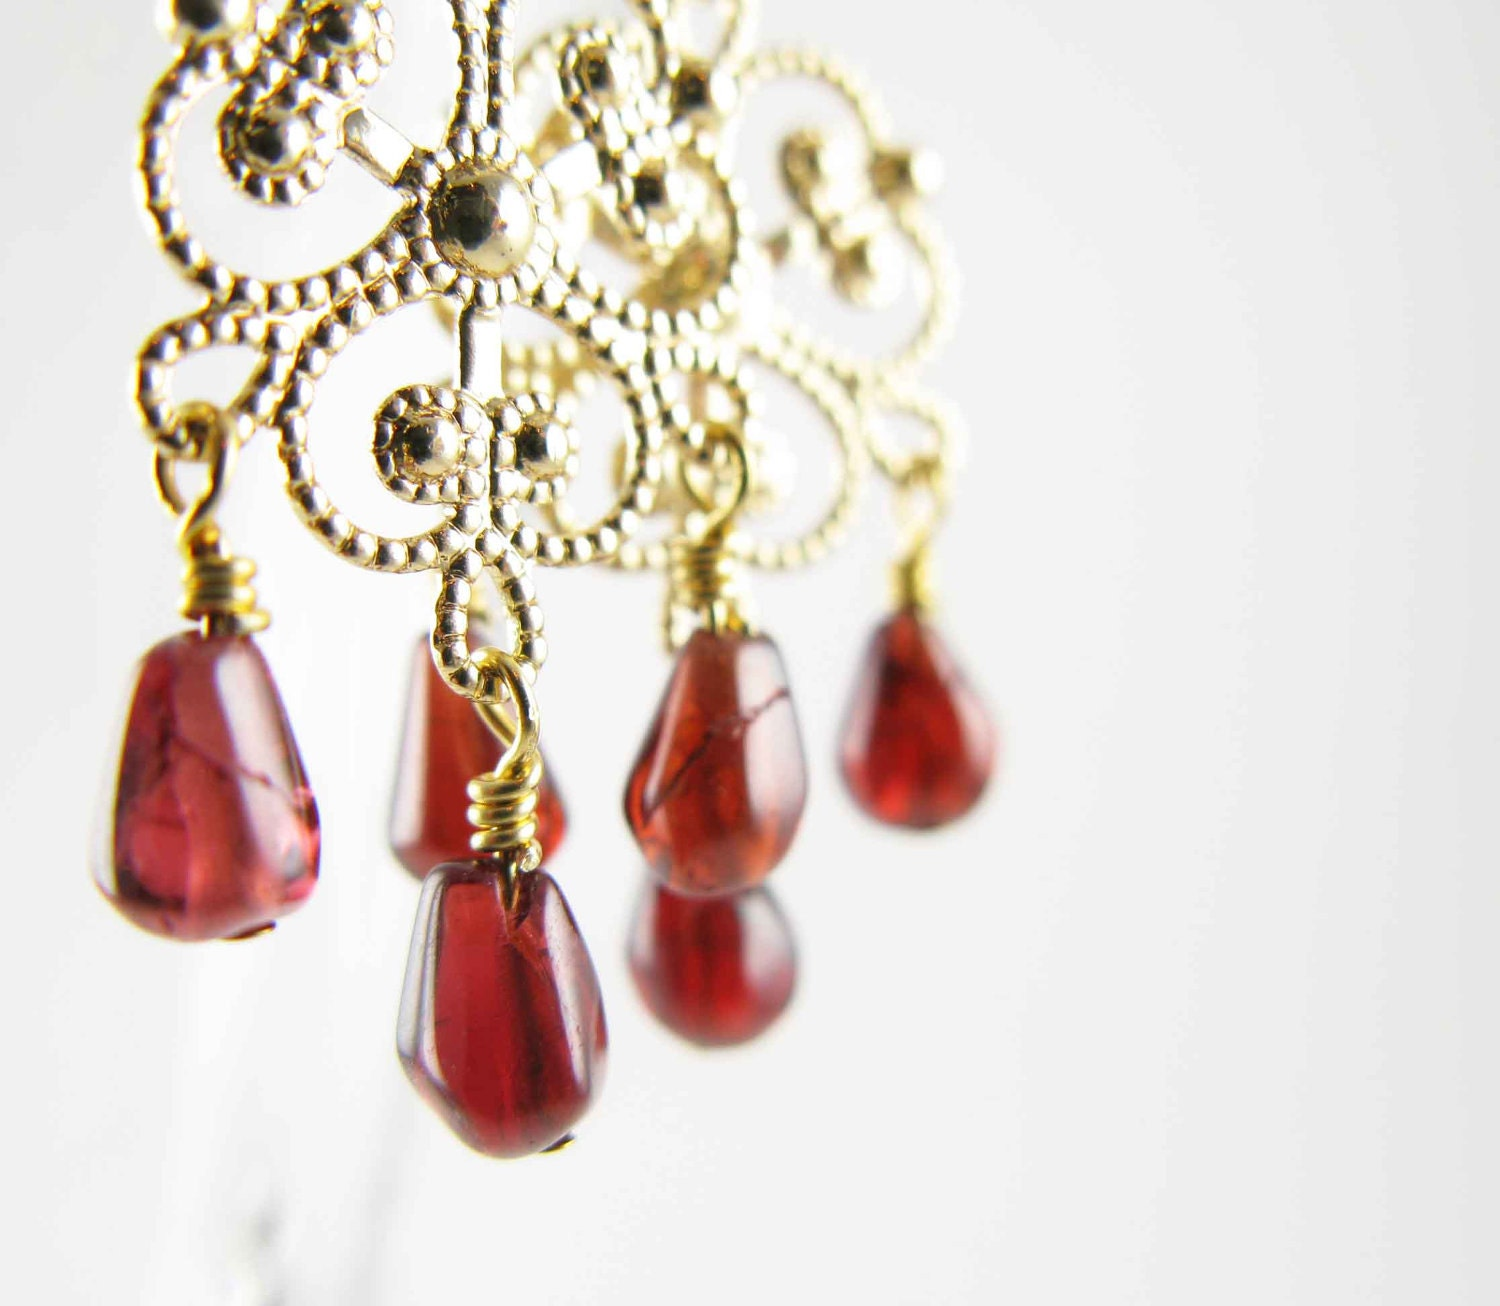 Hand assembled Chandelier earrings - gold plated filigree with garnet drops - Free shipping - mejjewelry